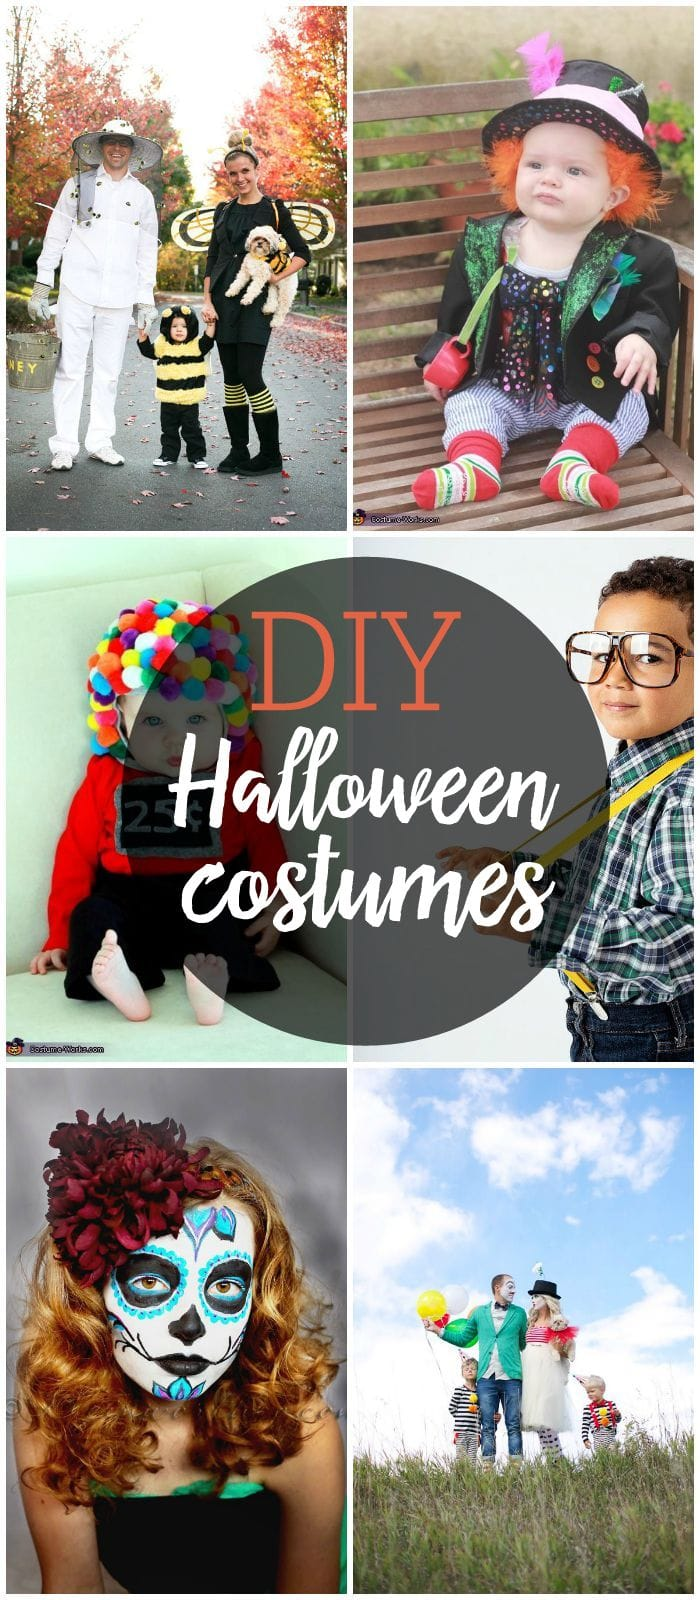 50 diy halloween costume ideas lil 39 luna. Black Bedroom Furniture Sets. Home Design Ideas